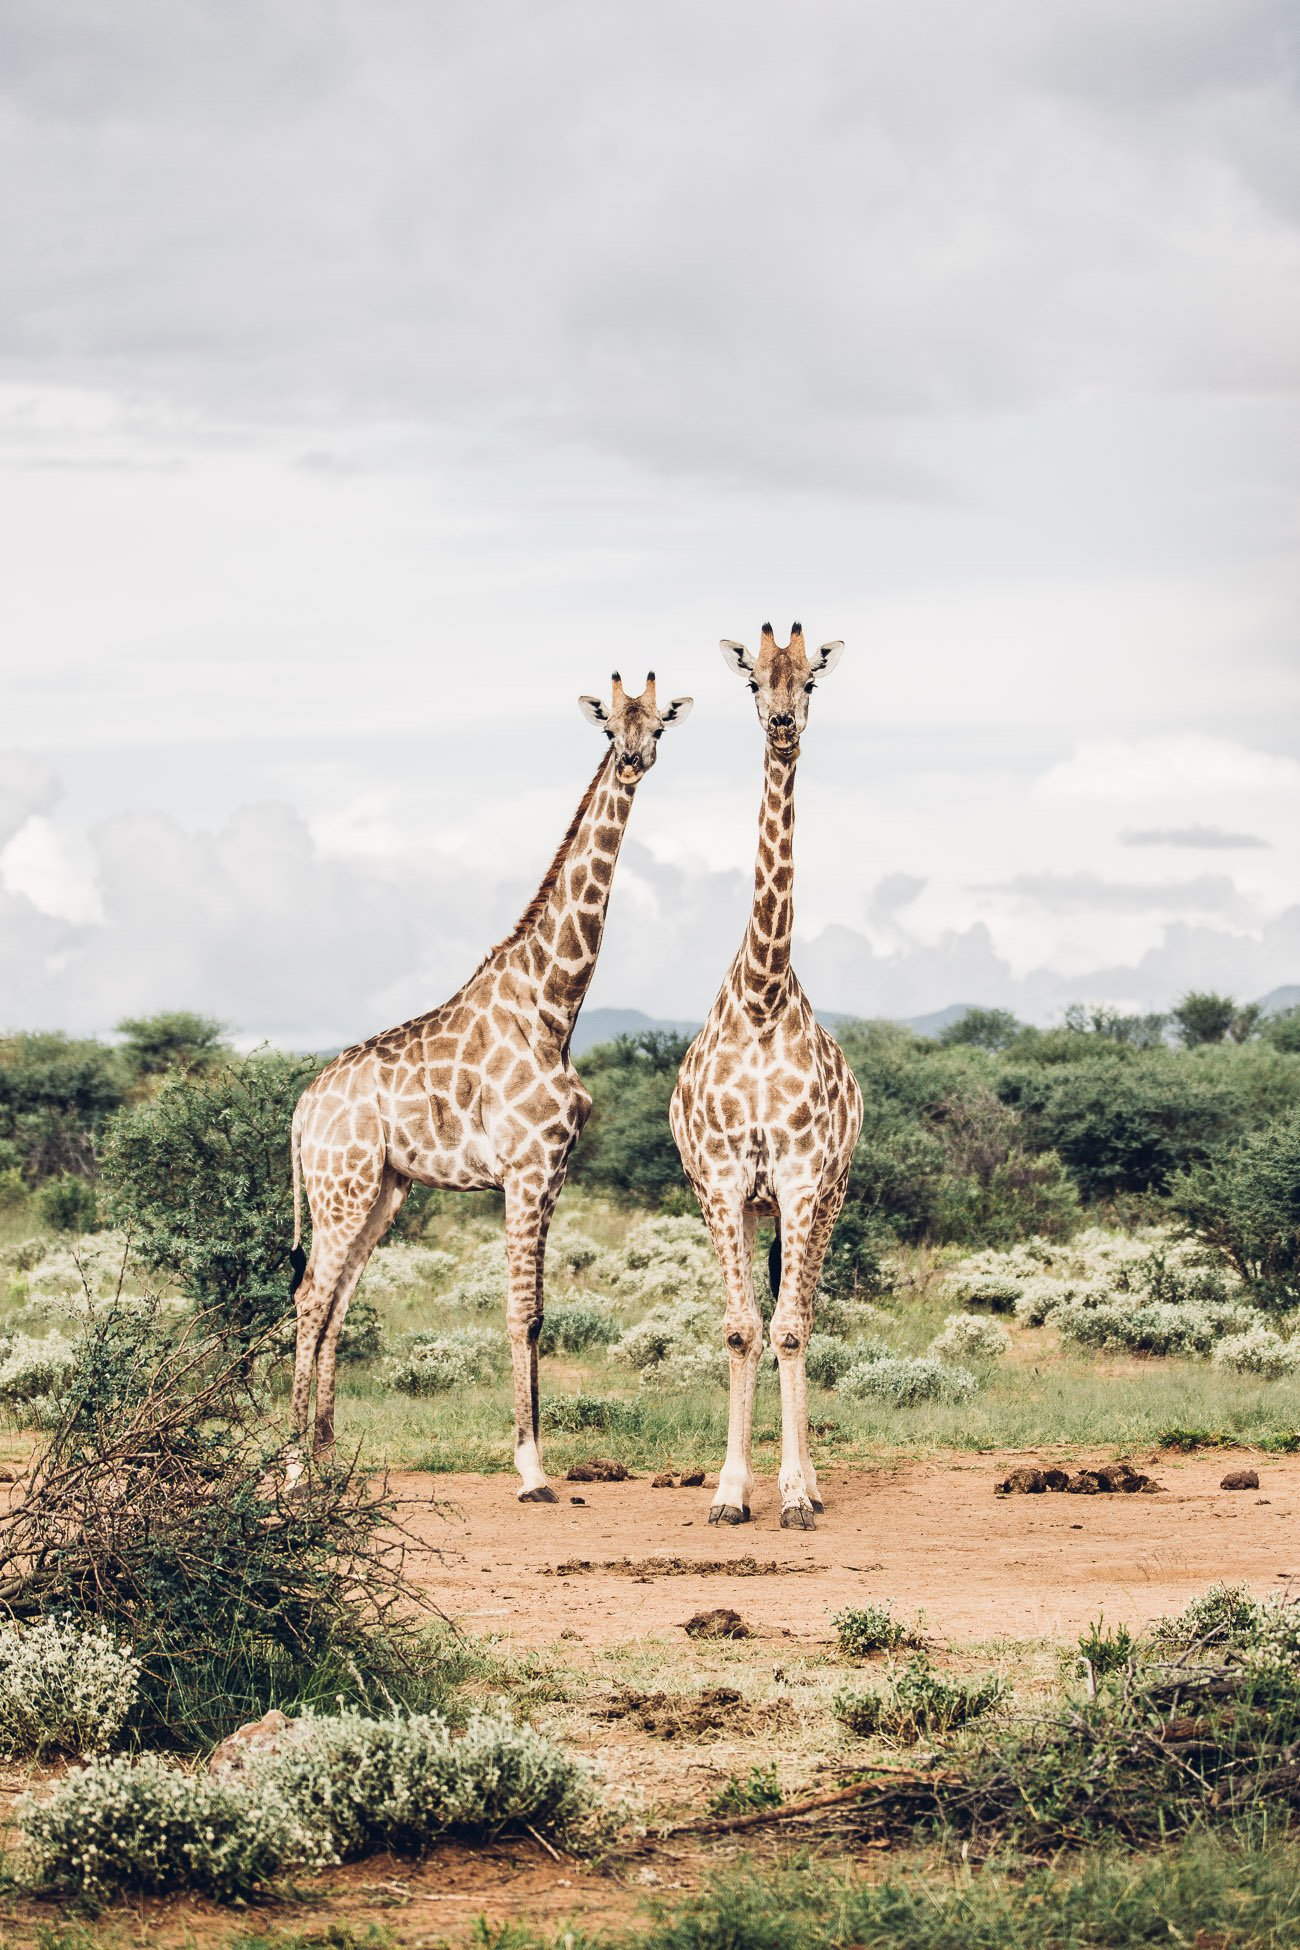 Giraffes at a Safari in Namibia